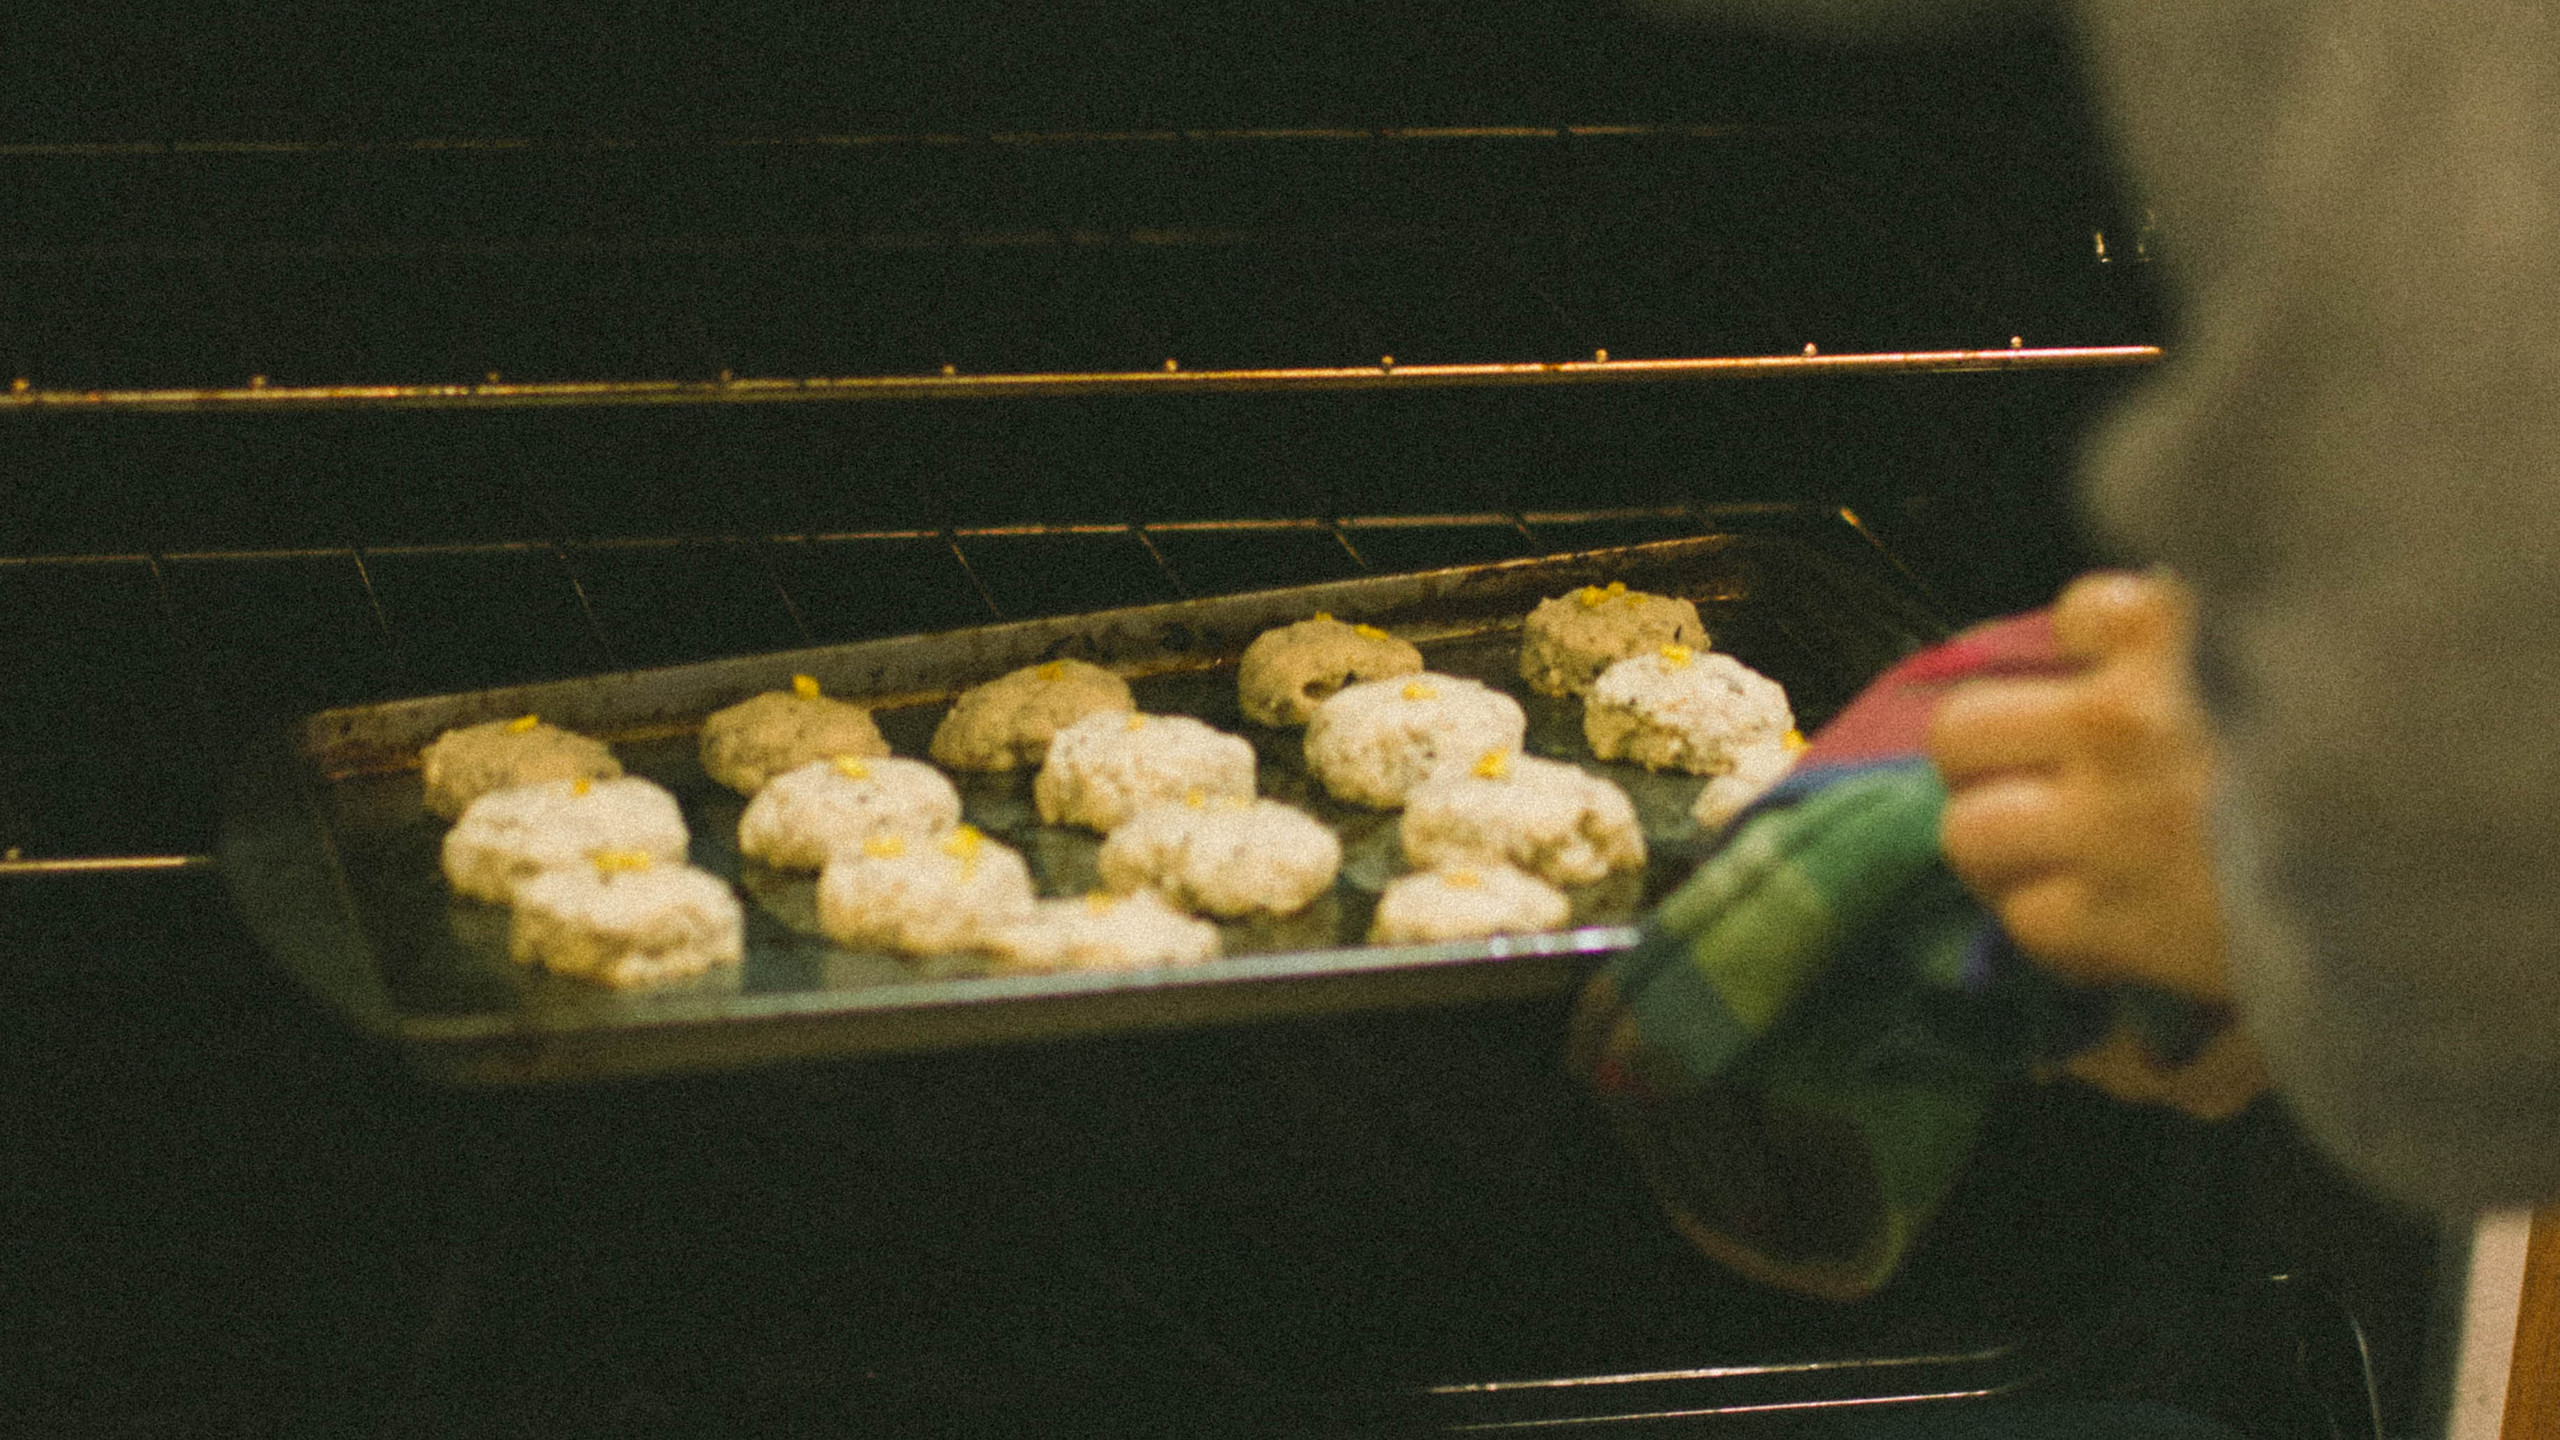 Pop 'em in the oven